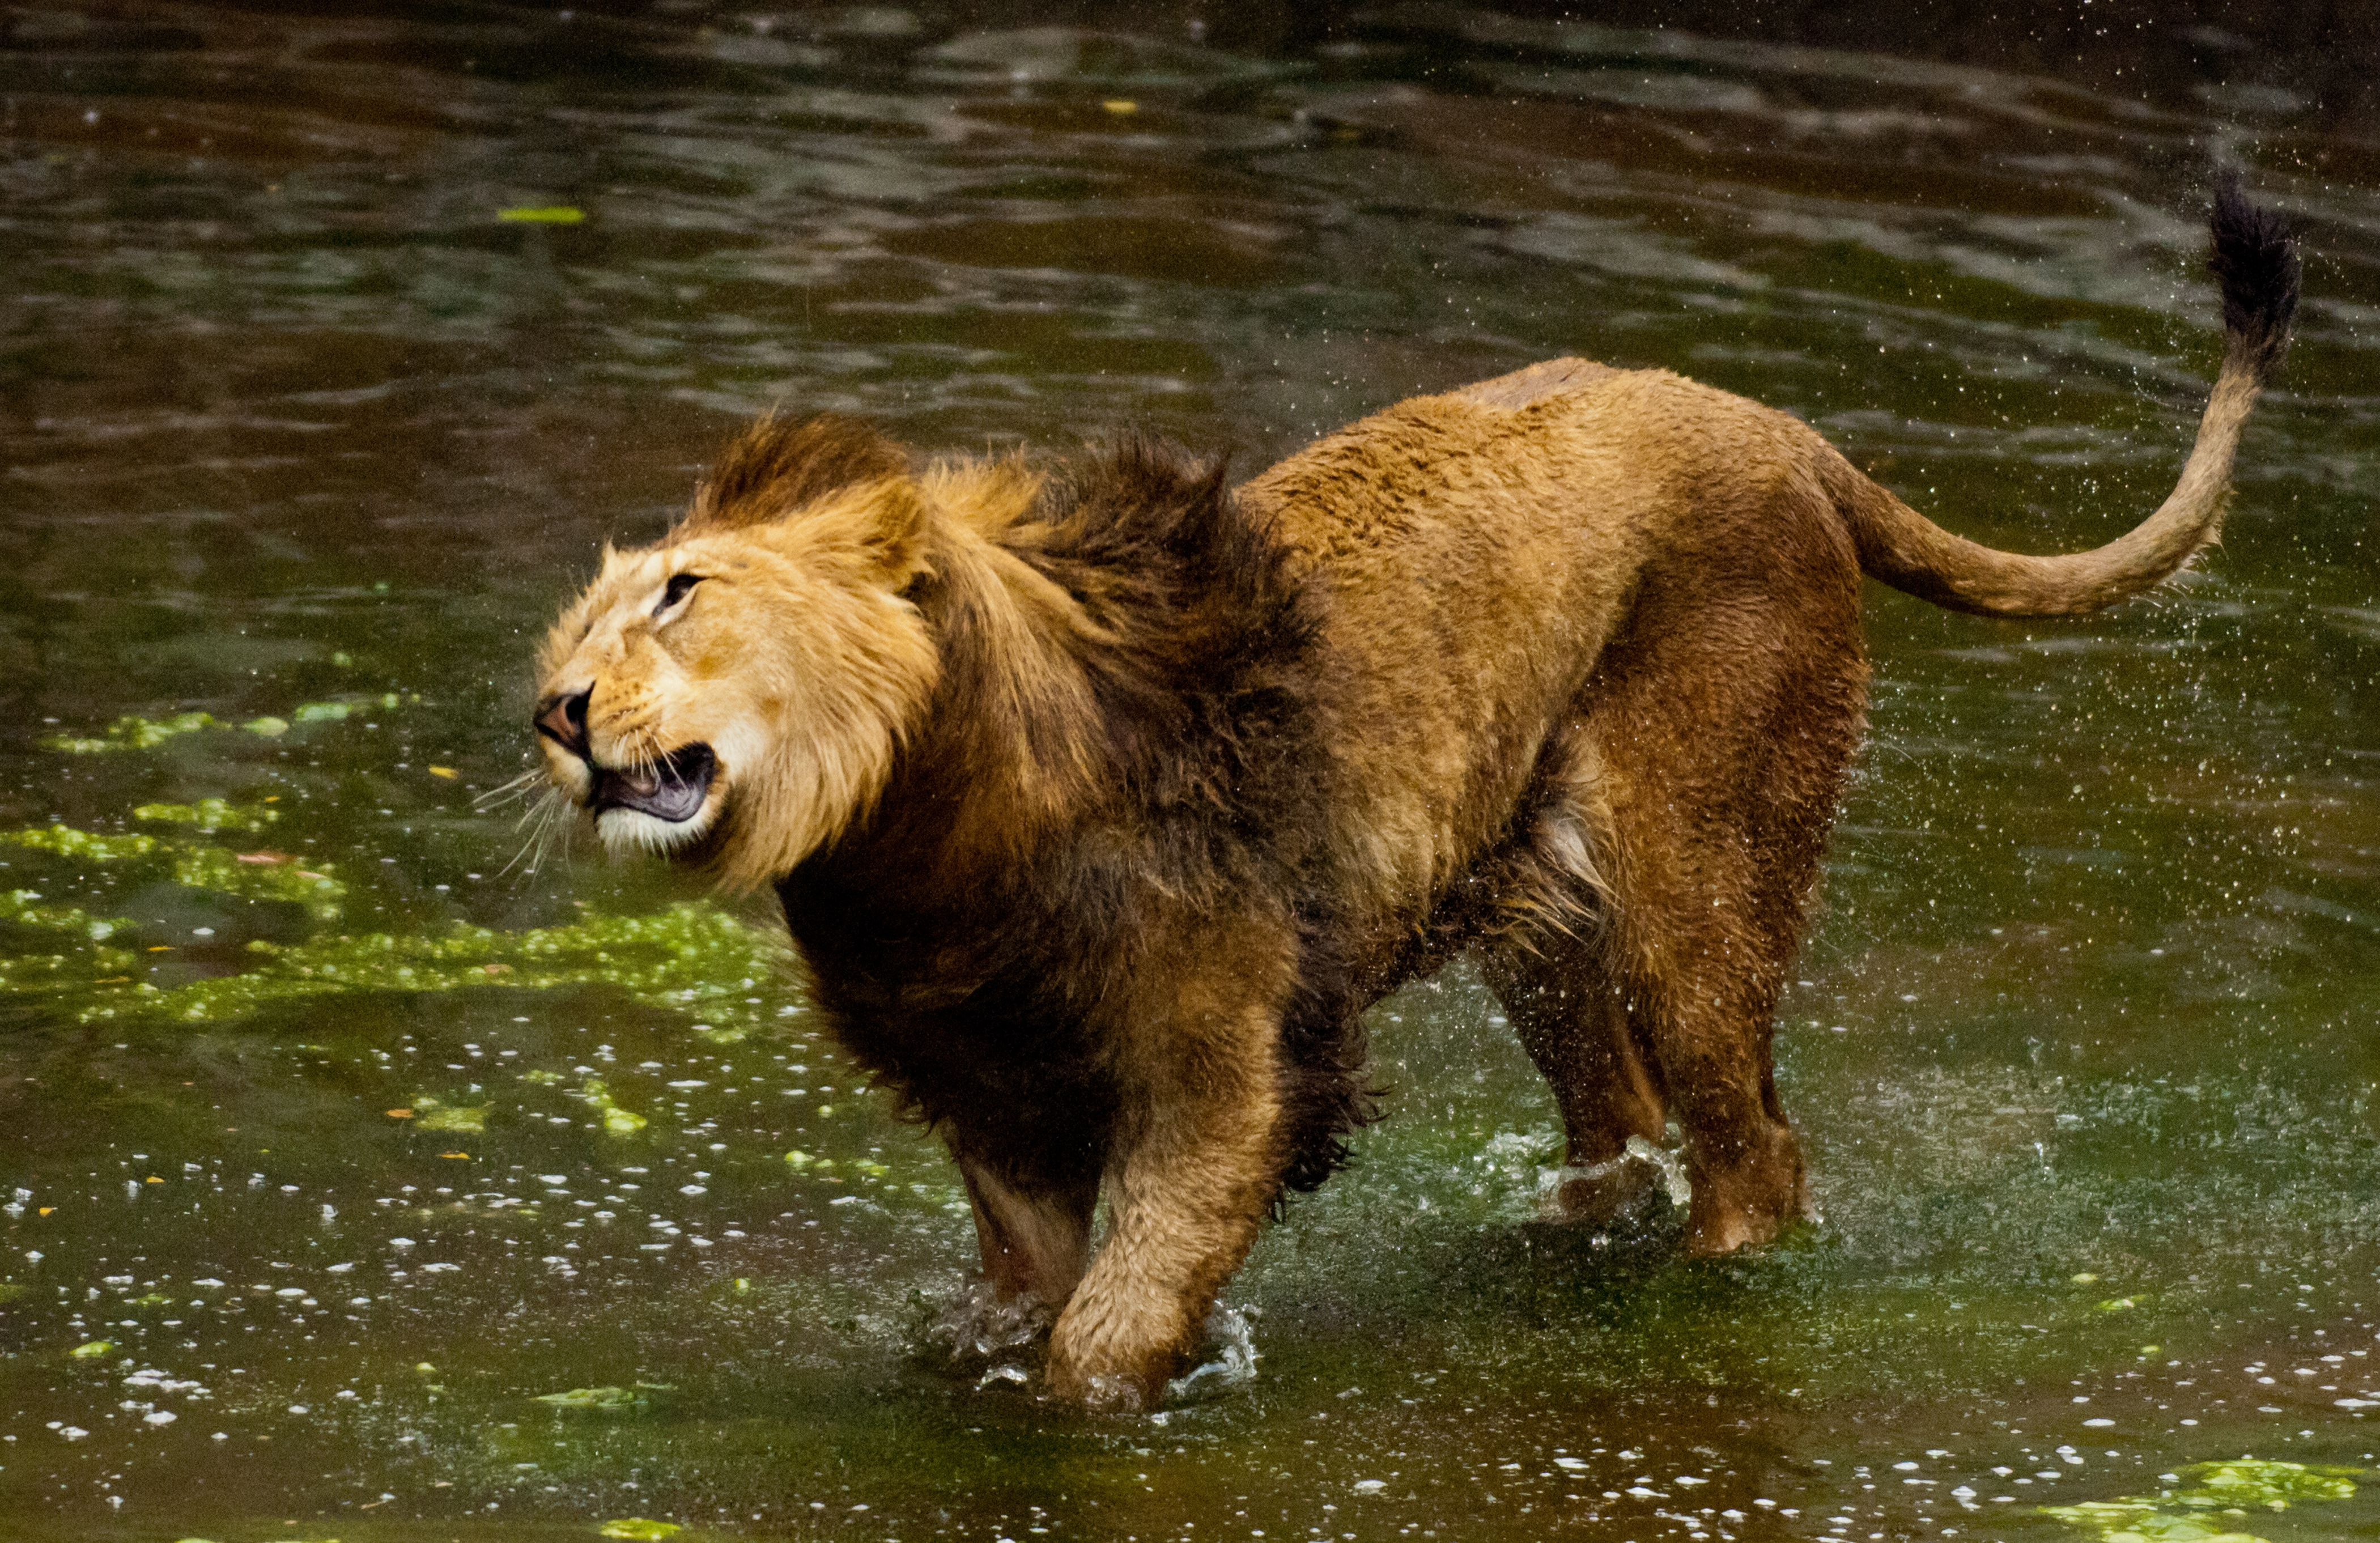 Barbary Lion in the water. Panthera leo leo. Extinct in the wild